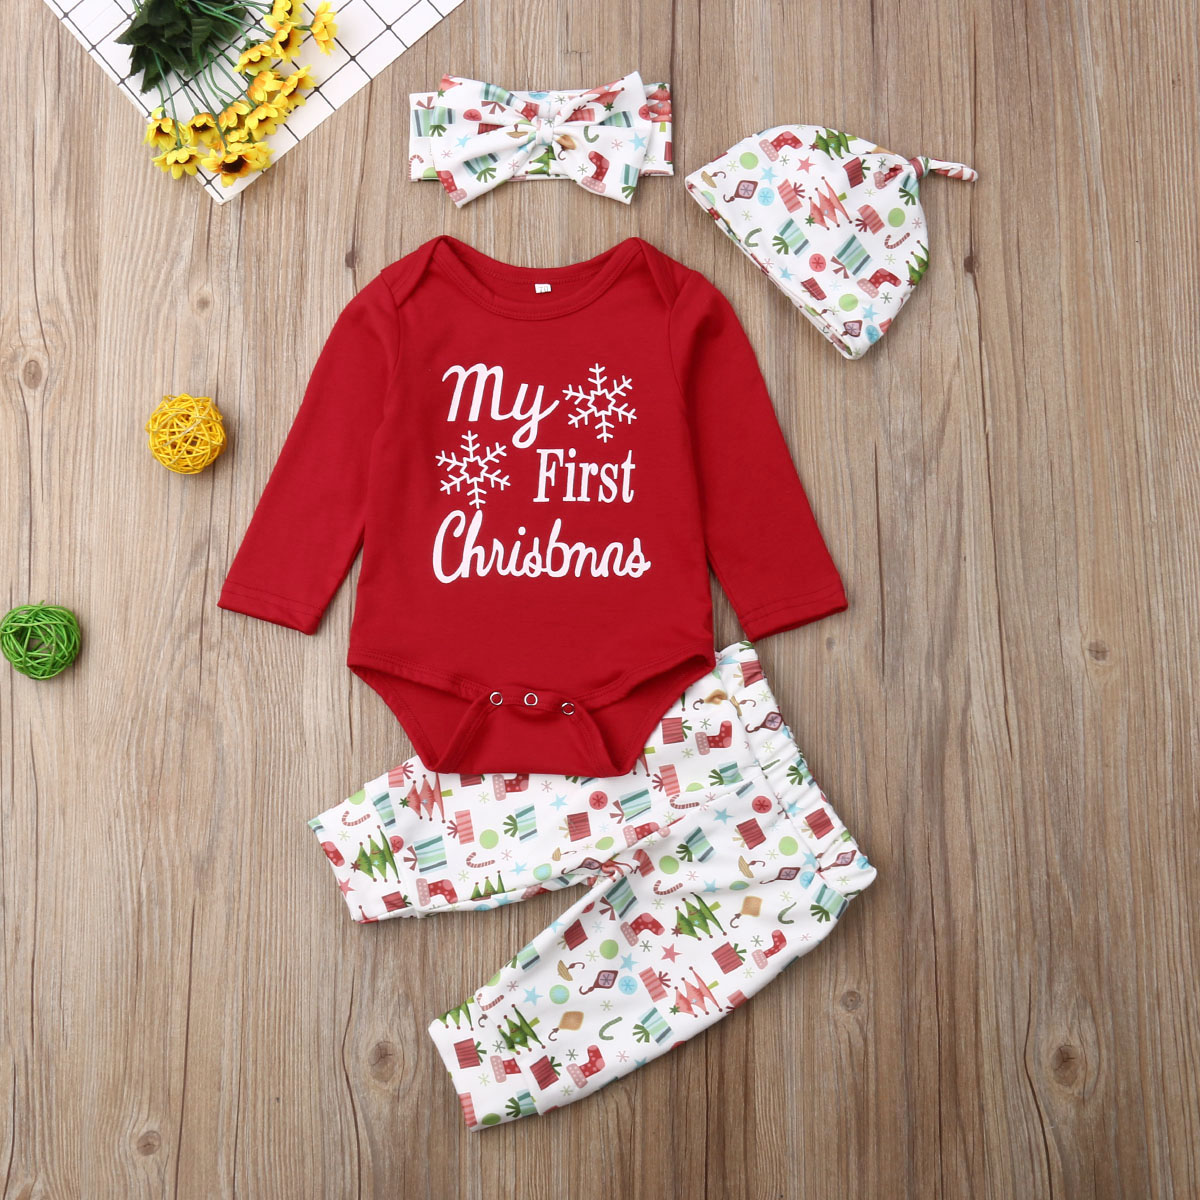 Newborn Christmas Outfit Girl.Details About New Baby Boy Girl Newborn First Christmas Clothe Romper Pant Hat Outfit 4pcs Set